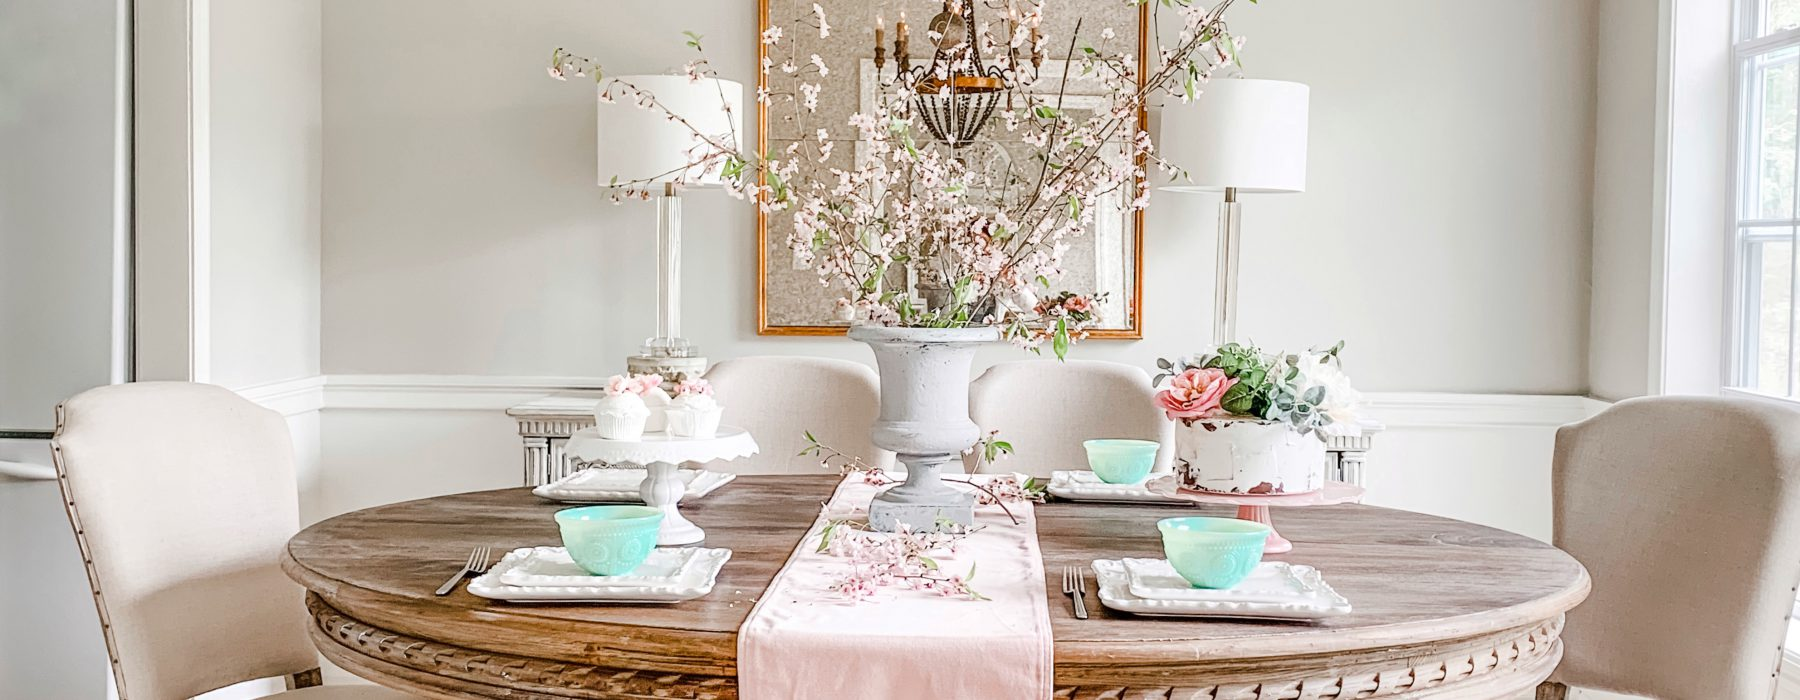 French Country Dining Room Reveal with Blogger Pamela Dyer